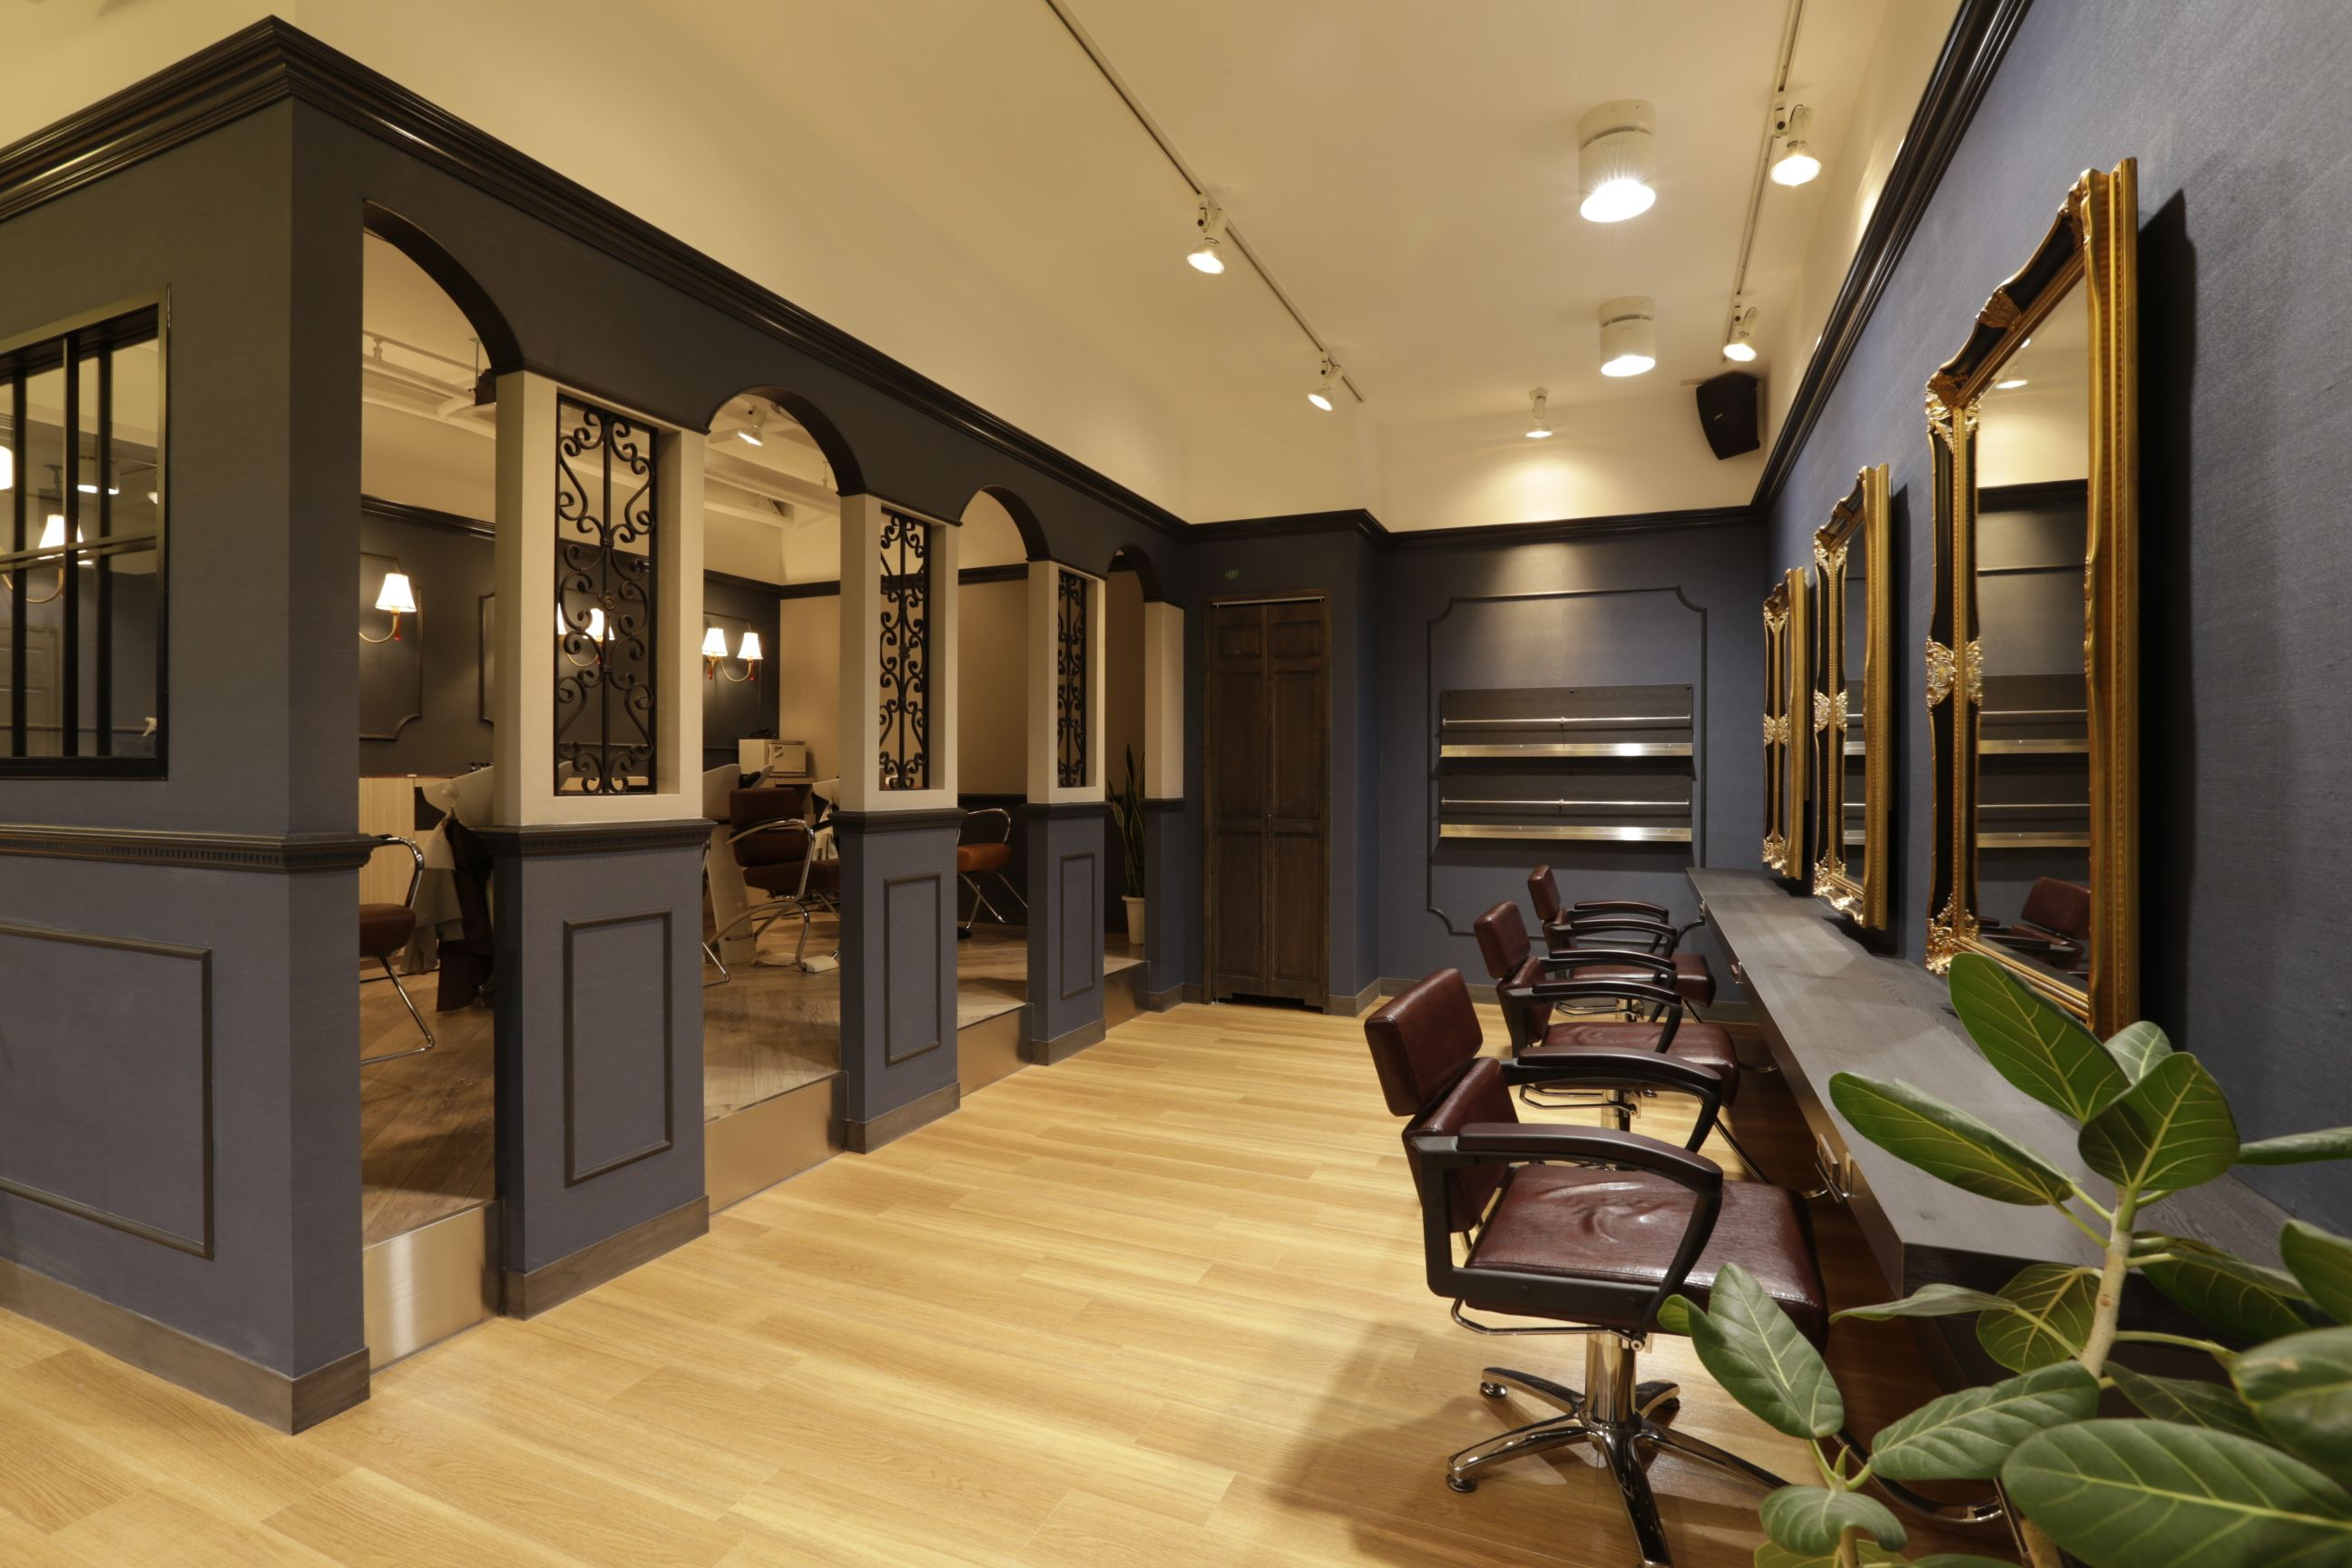 Beauty salon interior design ideas chairs mirrors for Interior design for salon